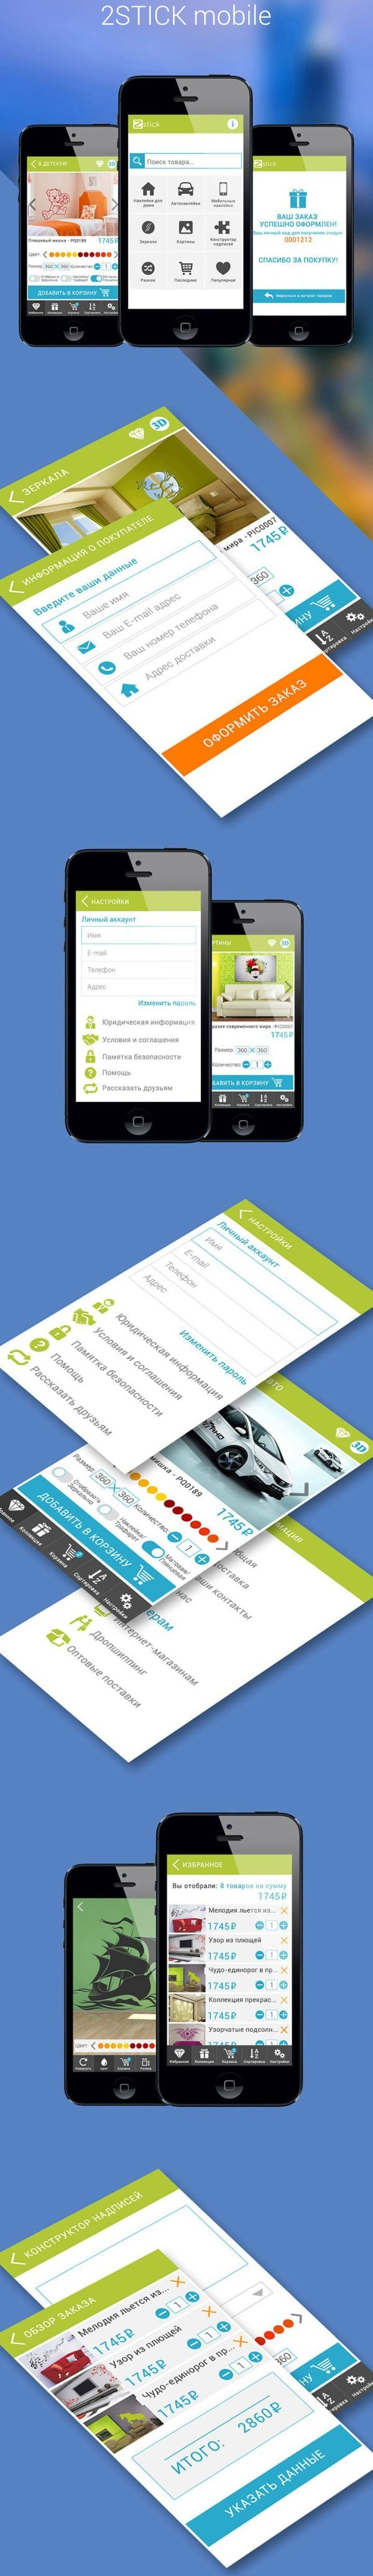 Mobile app for 2stick Marketplace by Artzoomi Studio